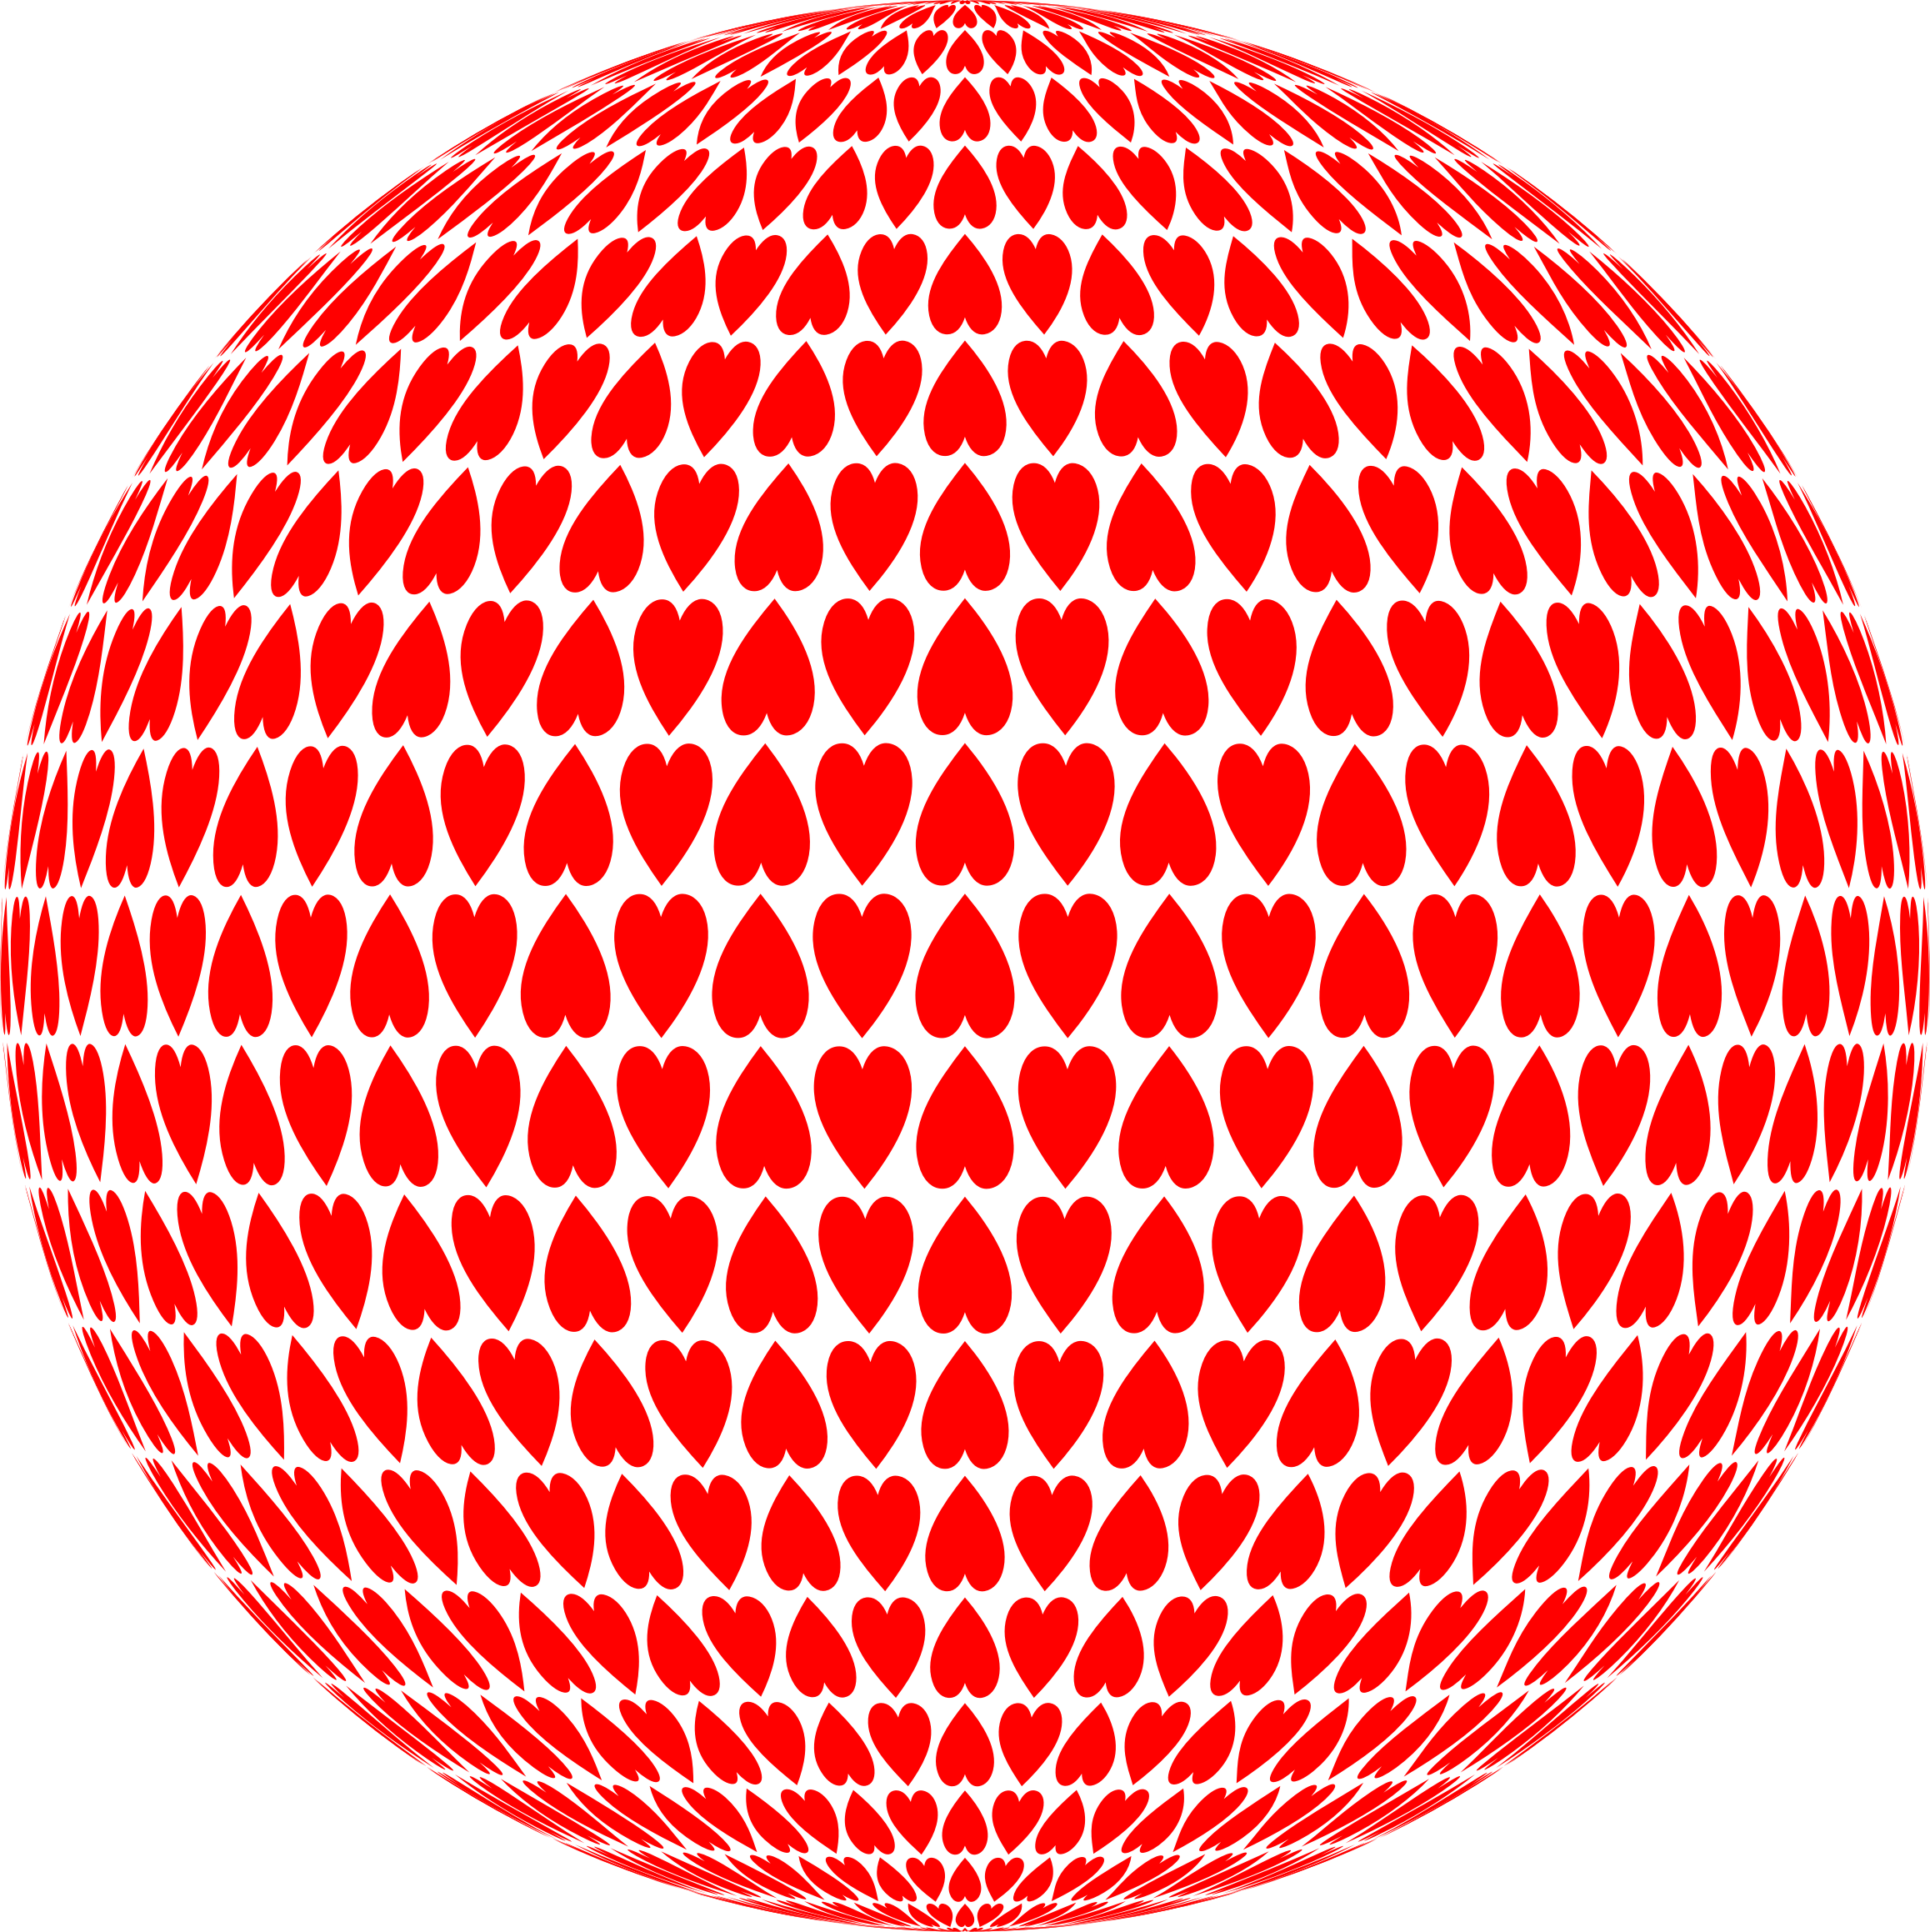 Alternating Hearts Sphere by GDJ